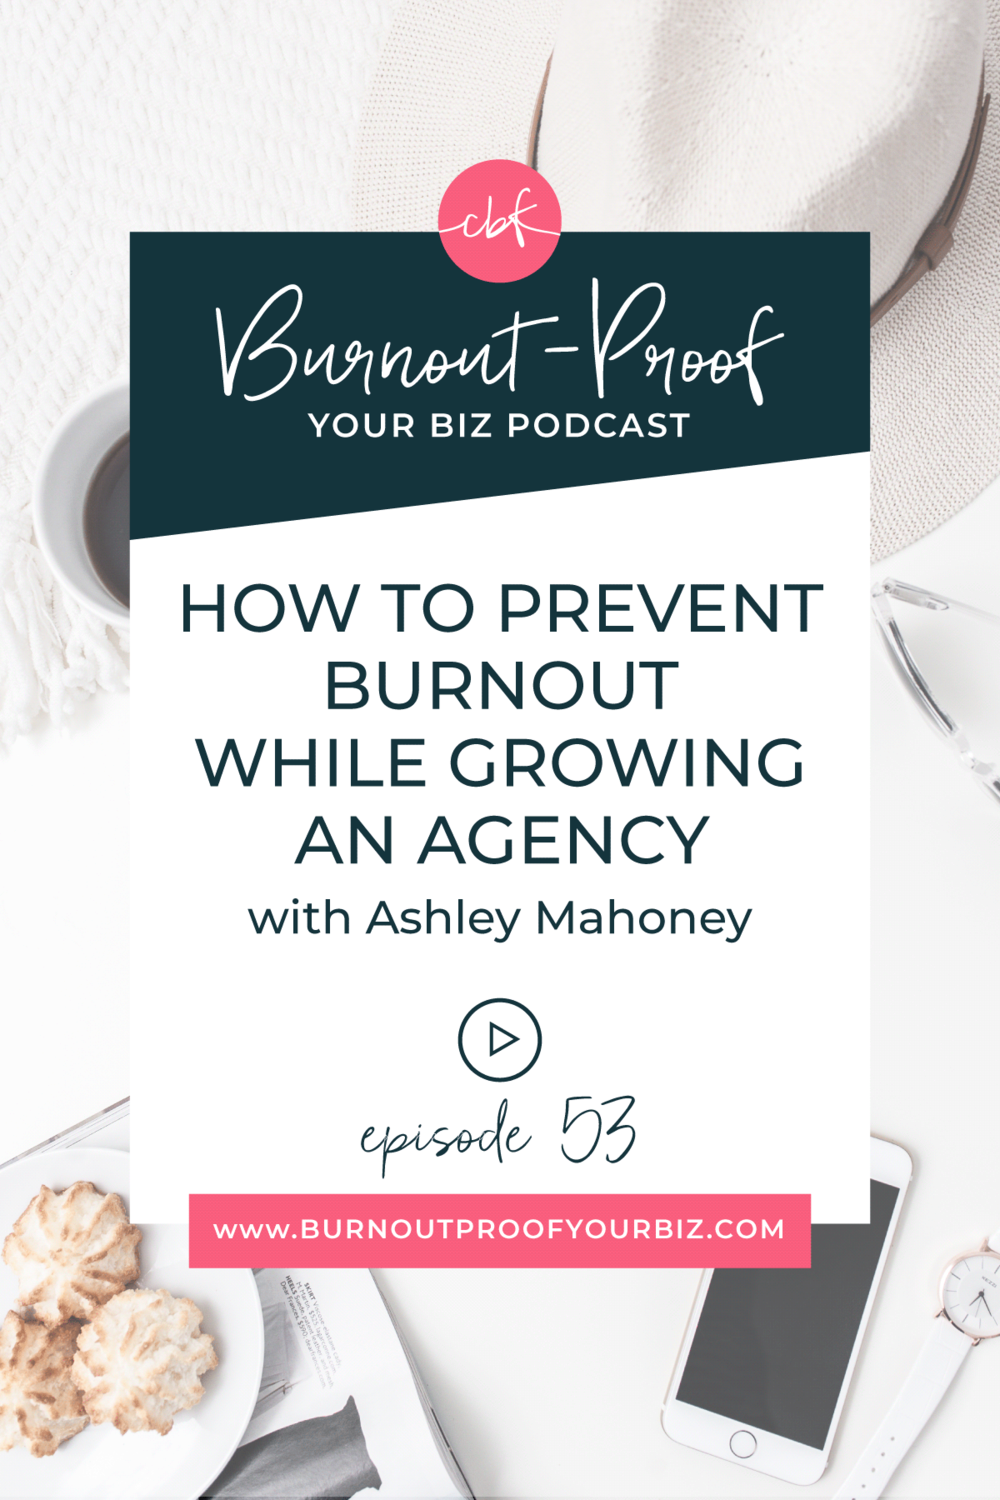 HOW TO PREVENT BURNOUT WHILE GROWING AN AGENCY on the Burnout-Proof Your Biz Podcast with Chelsea B Foster | Episode 055 - Trust, Problem-Solving, & Tolerances: Preventing Burnout While Growing an Agency from the Ground Up with Ashley Mahoney of Hello Big Idea | Learn how to run your biz and live your dream life on your own terms without the fear of burnout. |||  BUSINESS COACH | WORKFLOW & PRODUCTIVITY SPECIALIST | SYSTEMS & ORGANIZATION SPECIALIST FOR COACHES | ADD MORE FREEDOM TO YOUR LIFE | BUSINESS COACH FOR BLOGGERS | PREVENTING BURNOUT | GROWING AN AGENCY | SOLOPRENEUR VS HIRING A TEAM | HIRING FREELANCERS | FREELANCER TO RUNNING AN AGENCY | BREAKING DOWN PROJECTS INTO BITE-SIZE CHUNKS | BEING A PROBLEM SOLVER | BEING GROWTH-ORIENTED | LIST OF TOLERANCES